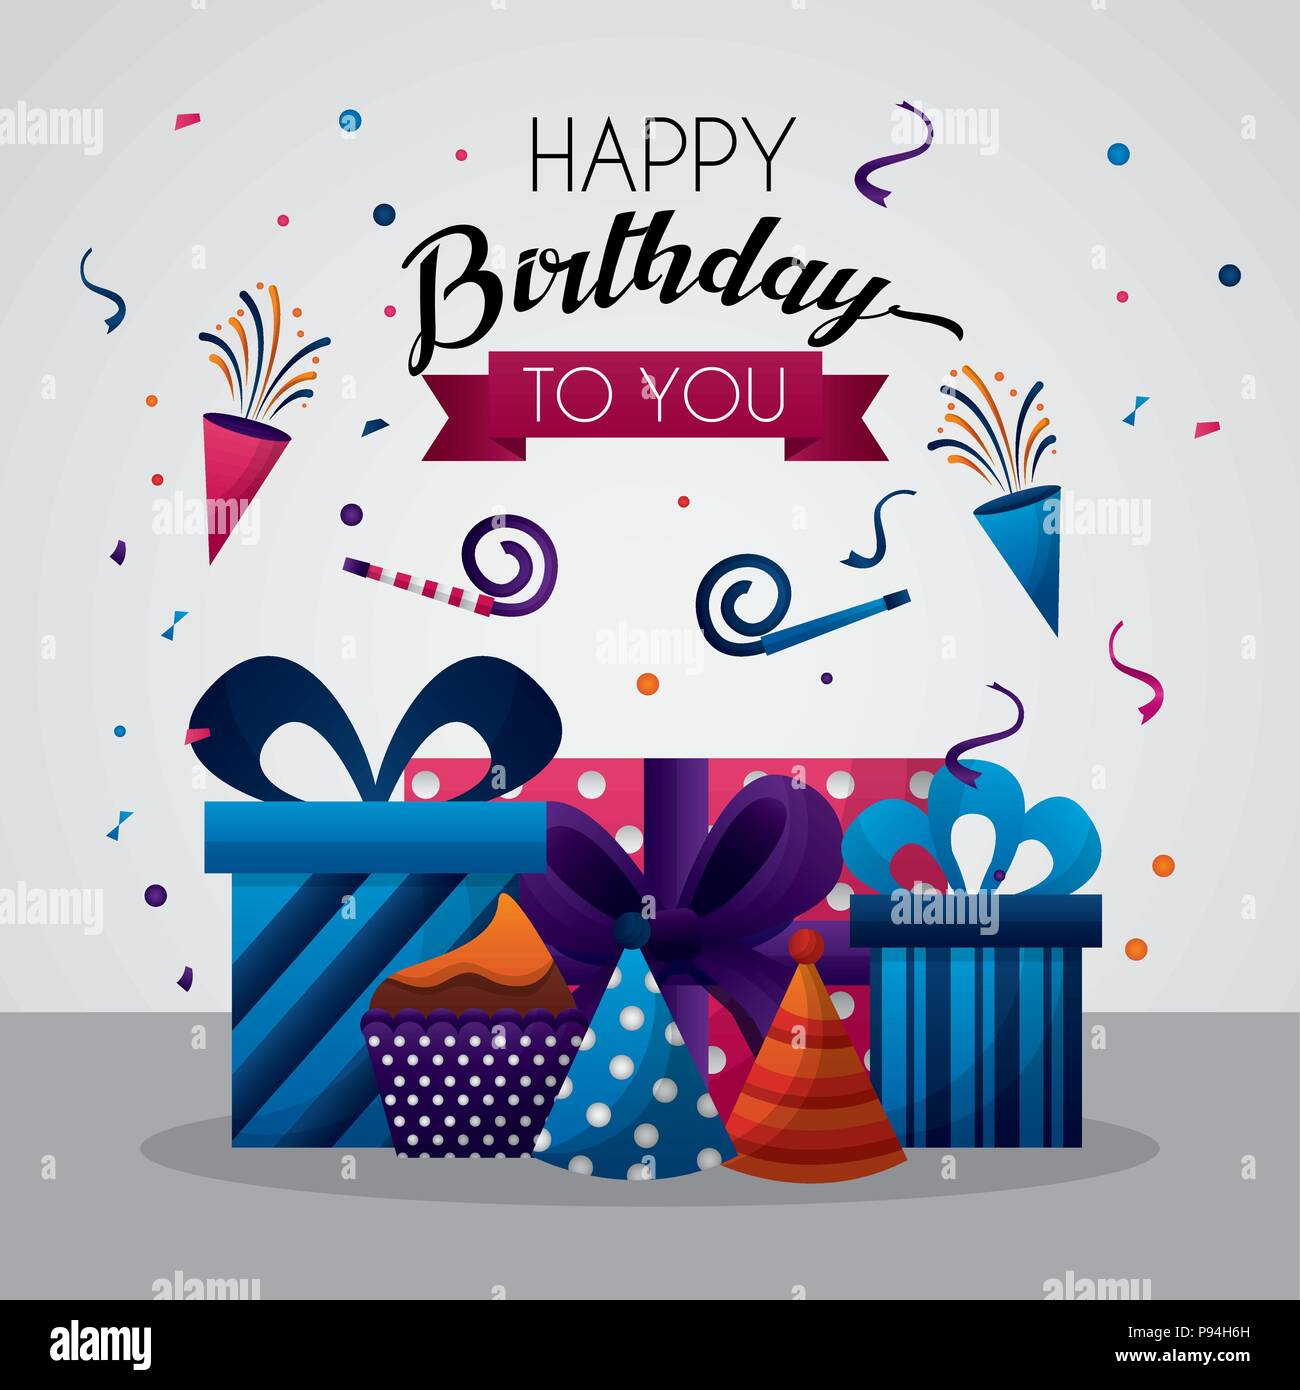 Happy Birthday Card Celebration Party Birth Rockets Hats Gift Boxes Vector Illustration